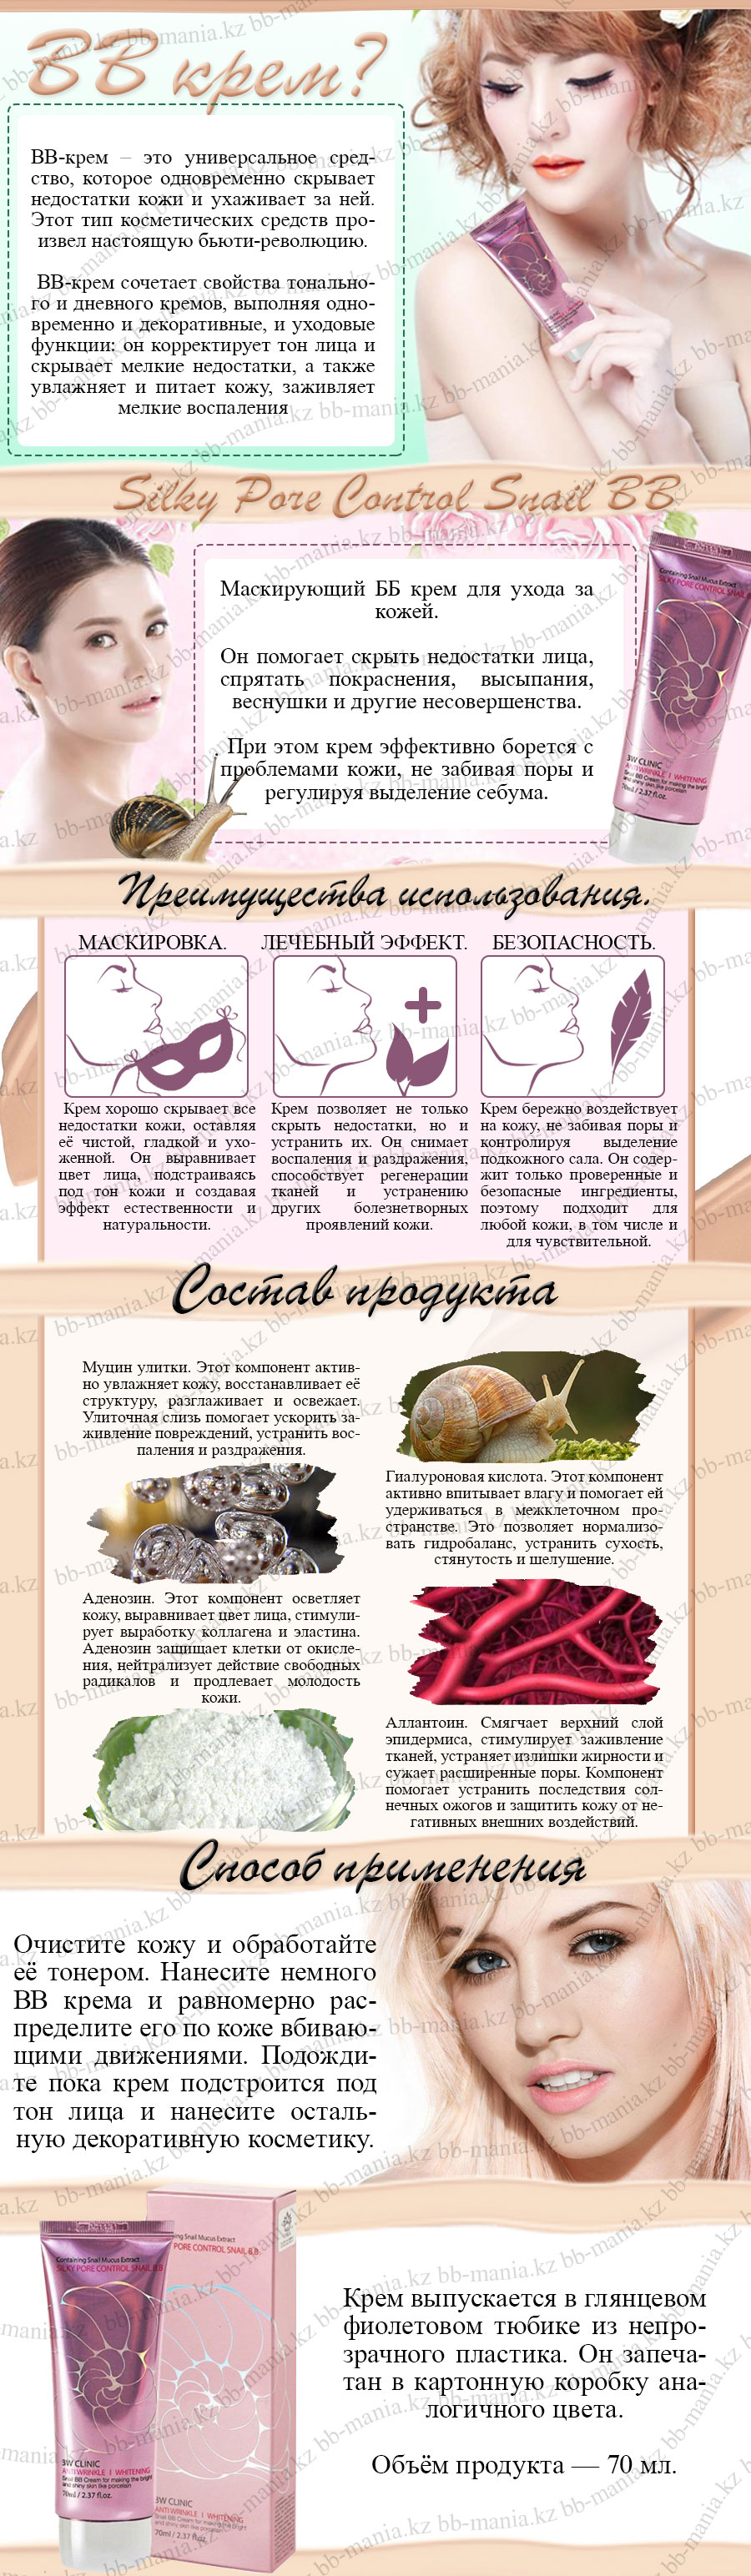 Silky Pore Control Snail BB [3W CLINIC] - Картинка